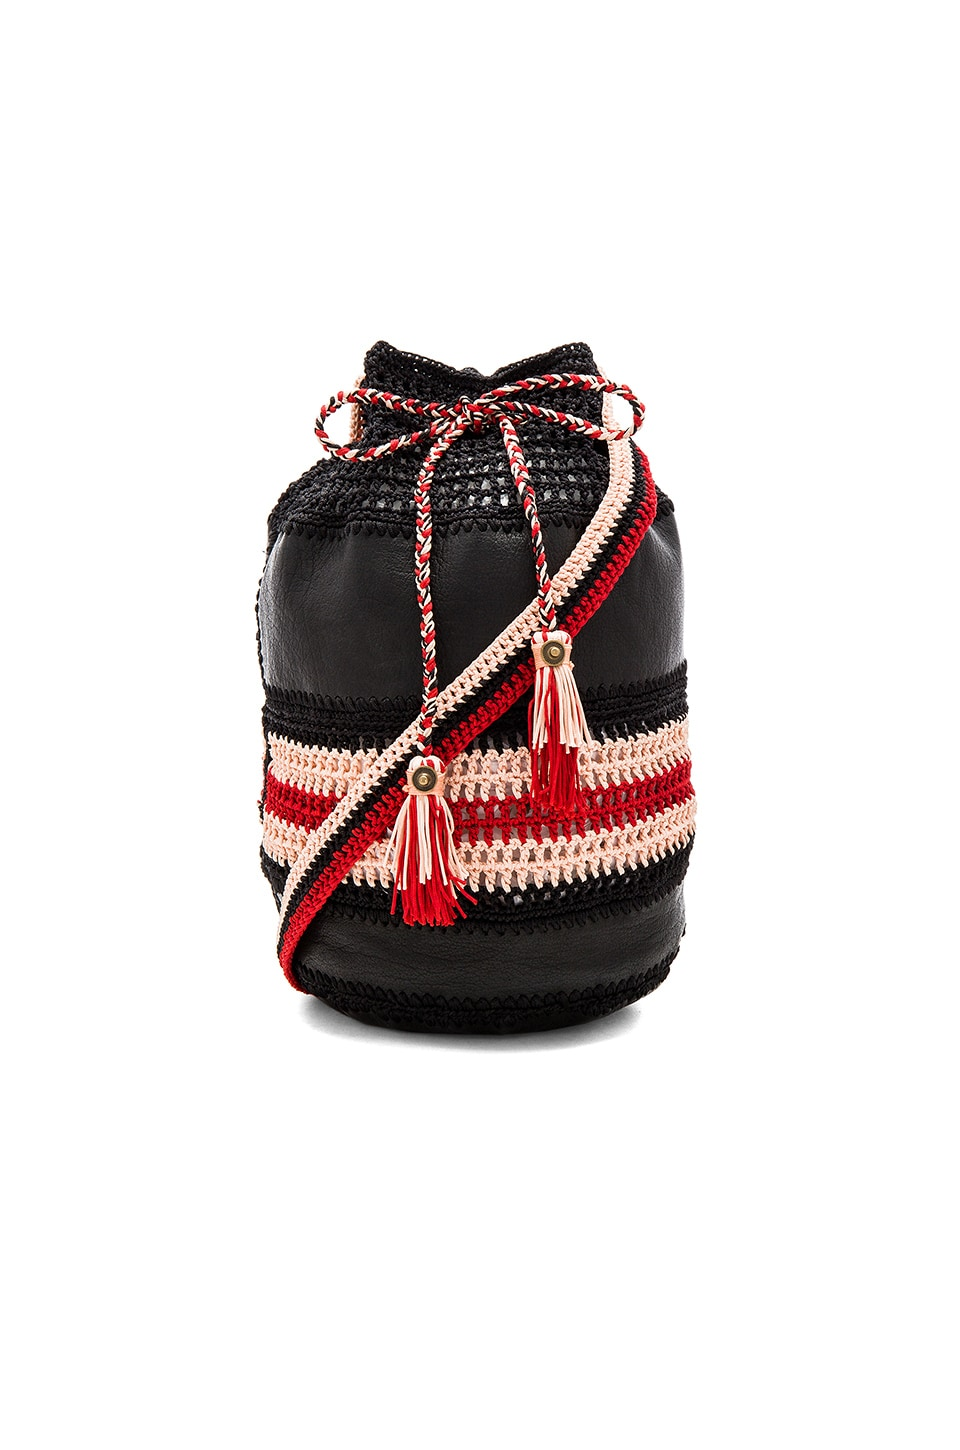 Almadine Bucket Bag by Cleobella